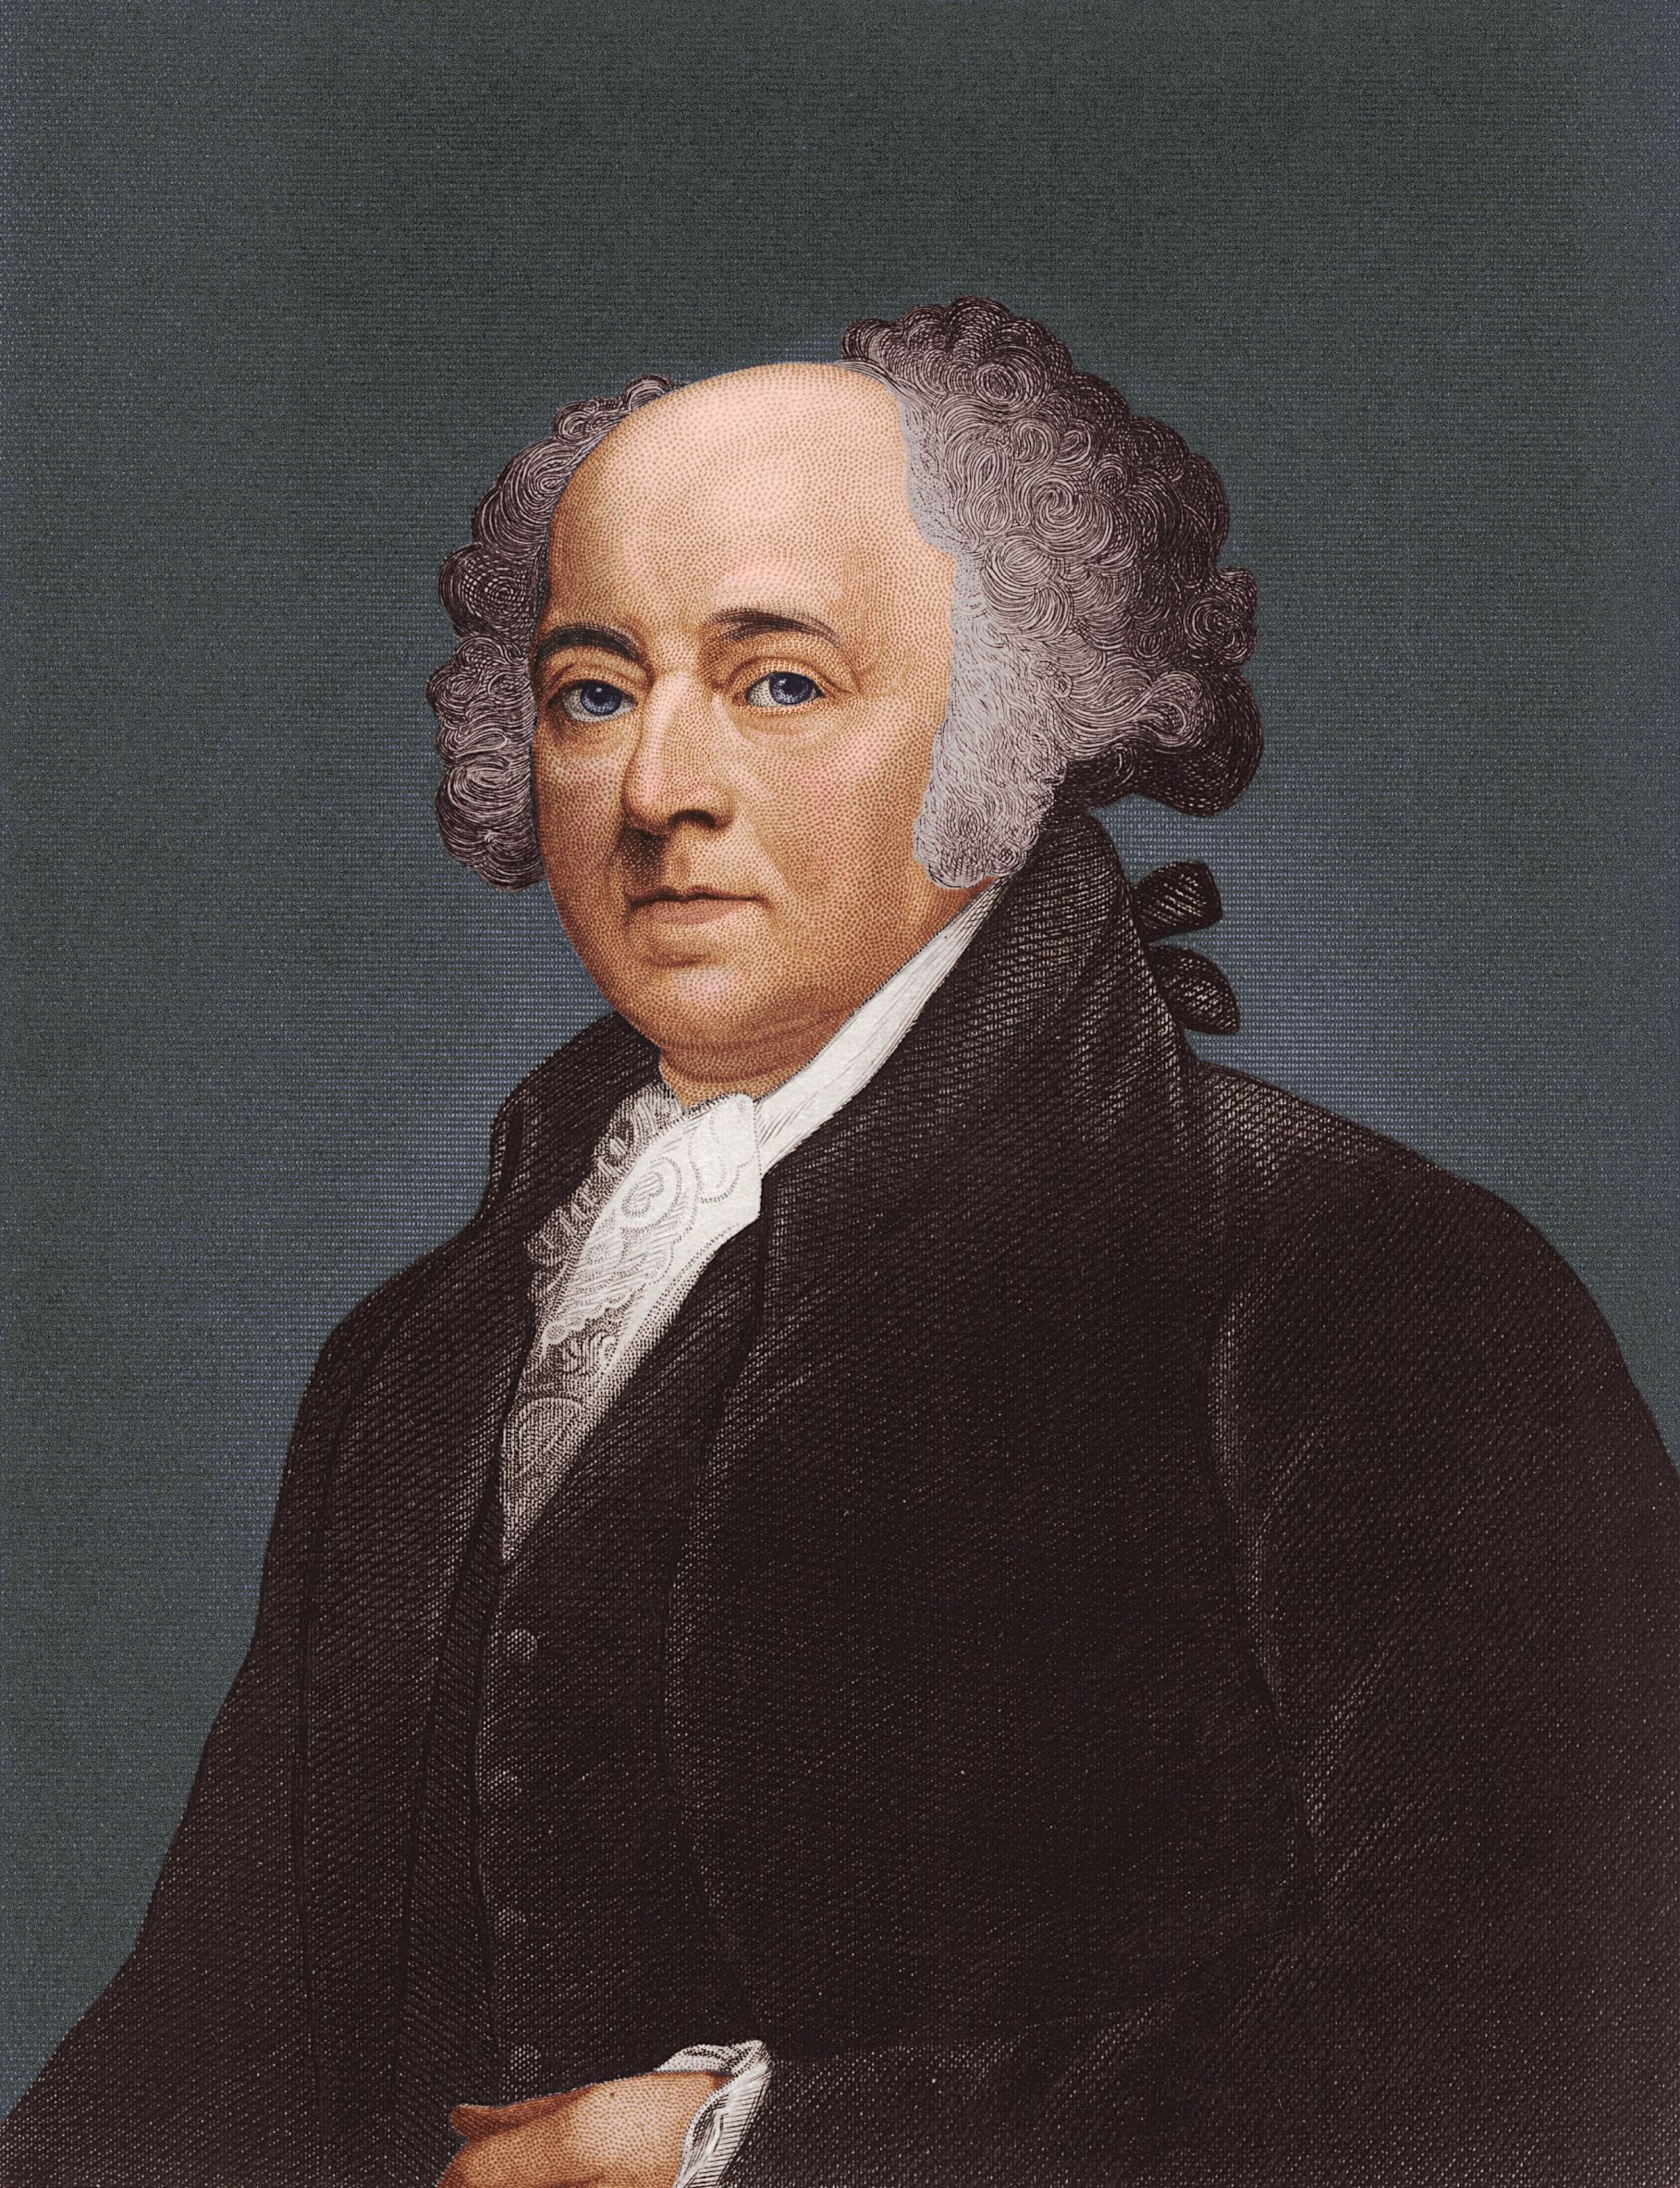 John Adams (1735 - 1826), second president of the United States of America.